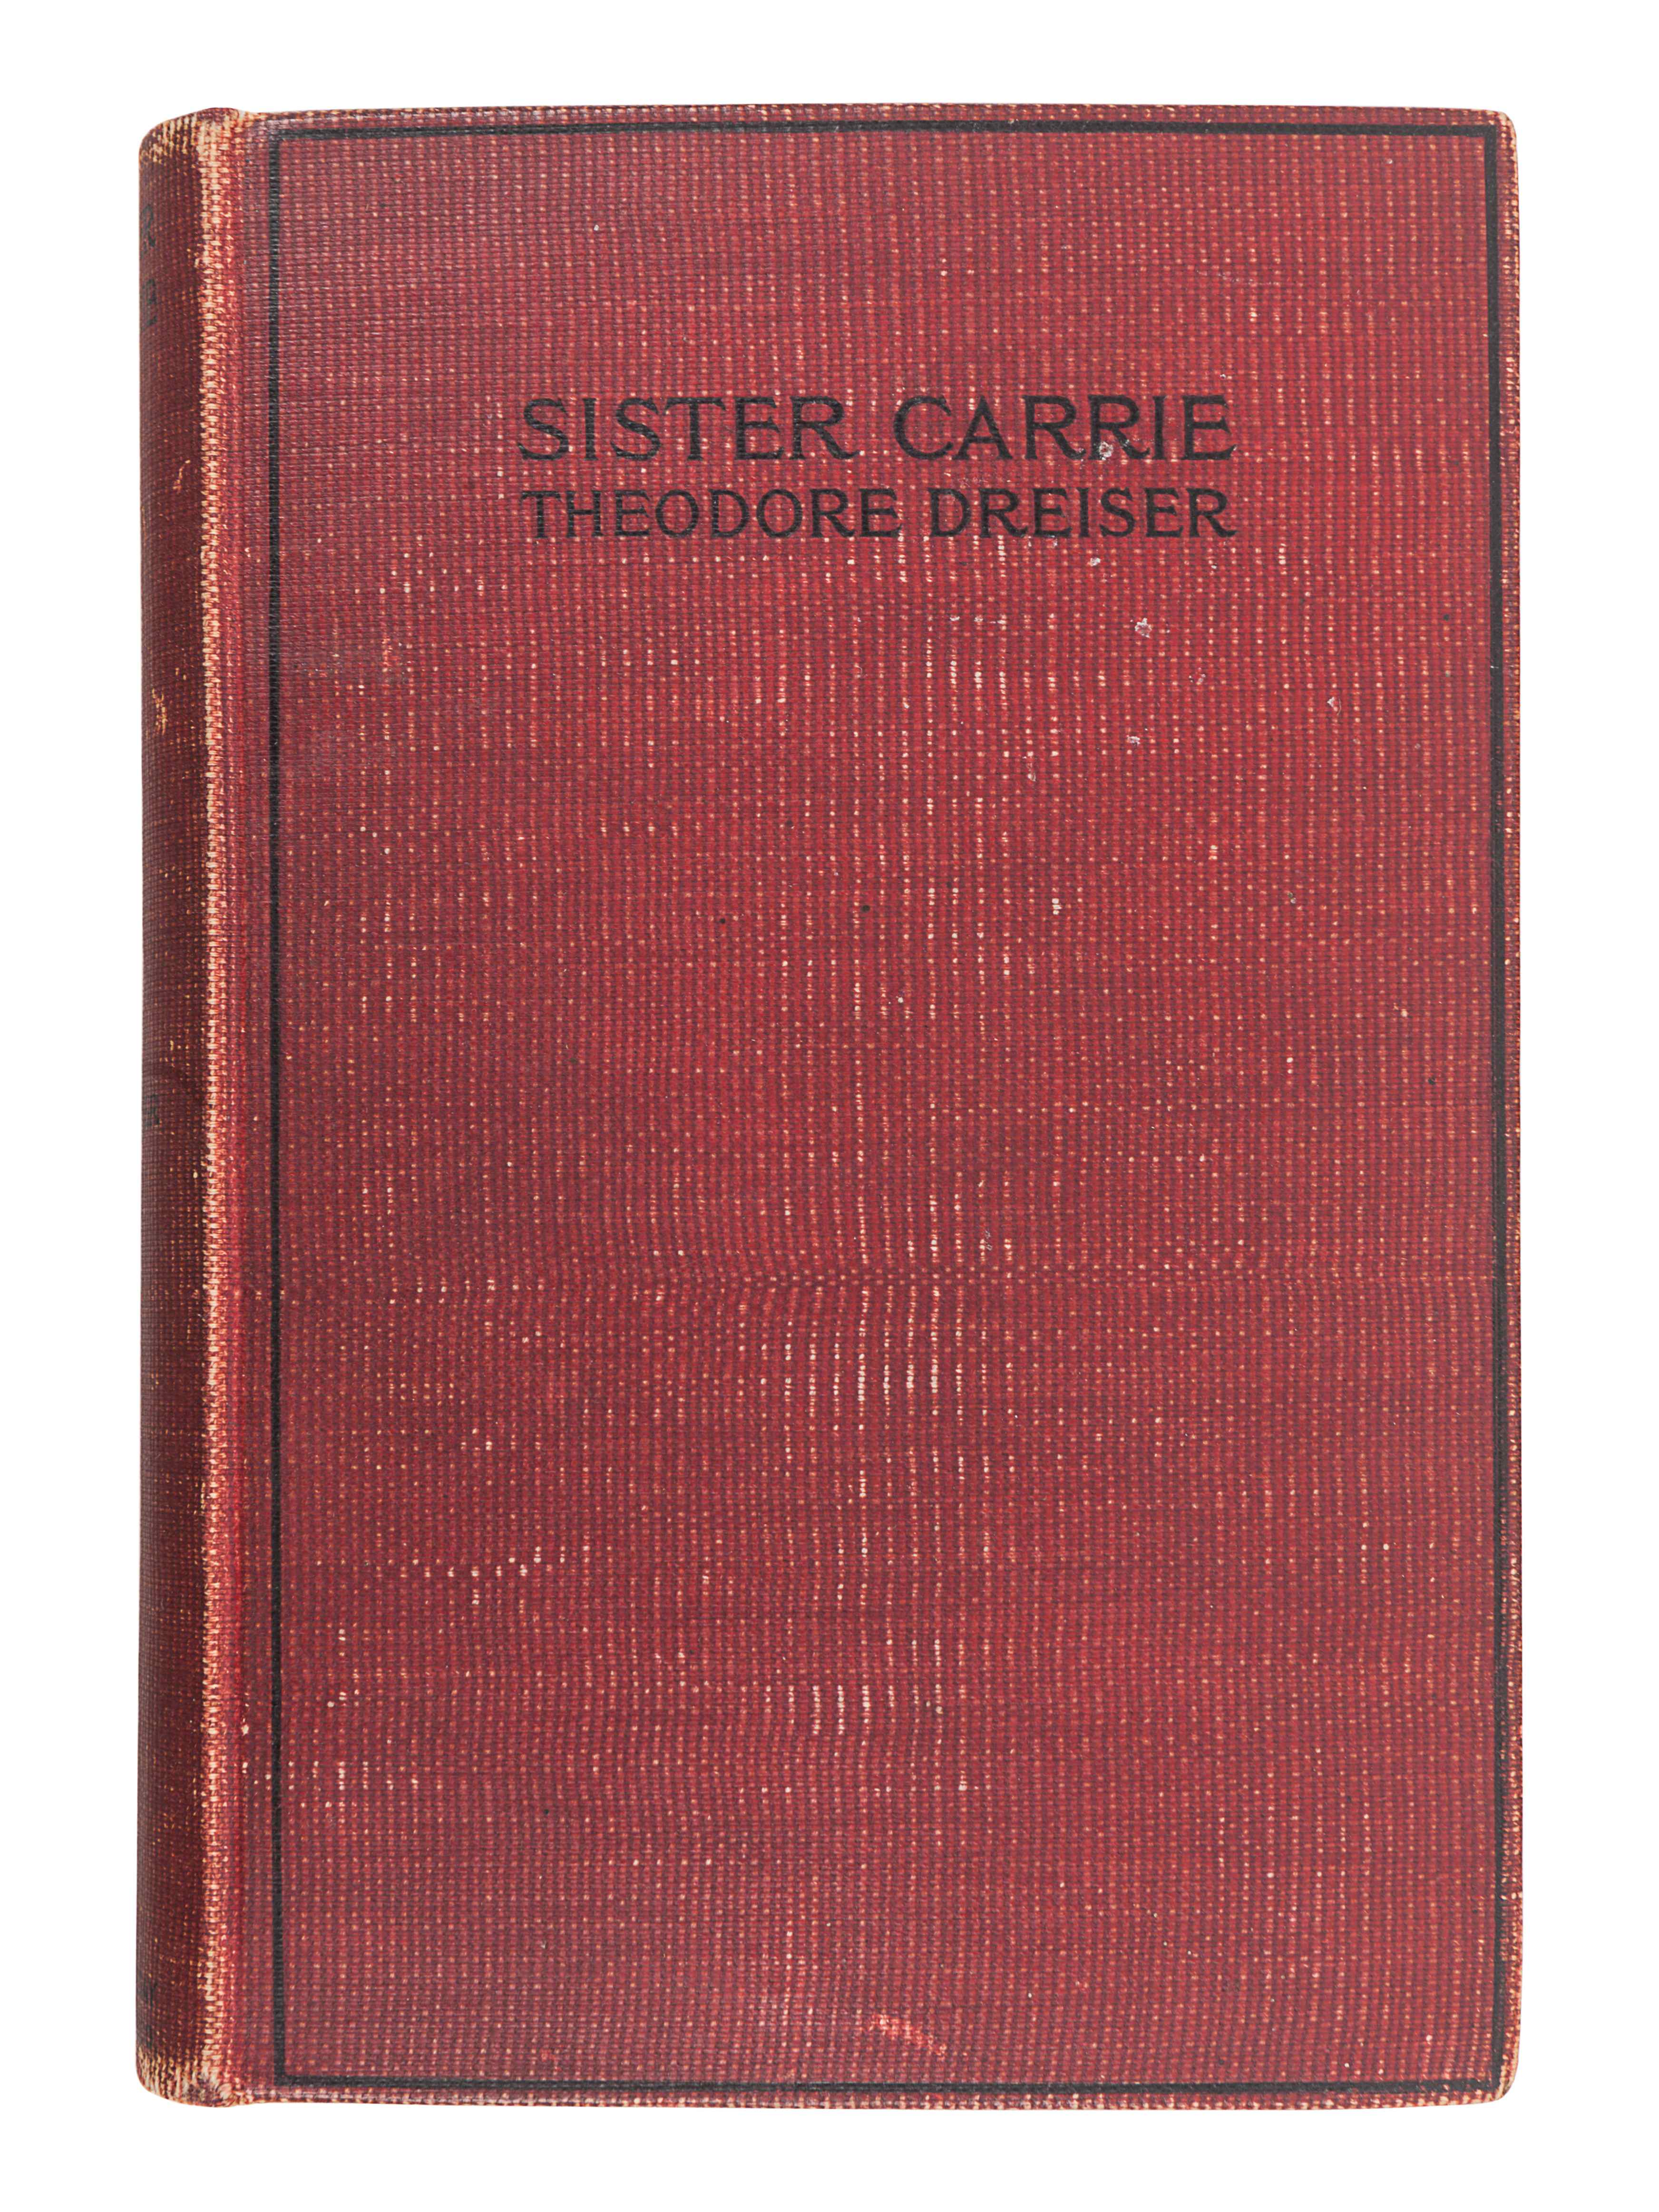 DREISER, Theodore (1871-1945). Sister Carrie. New York: Doubleday, Page, and Co., 1900.